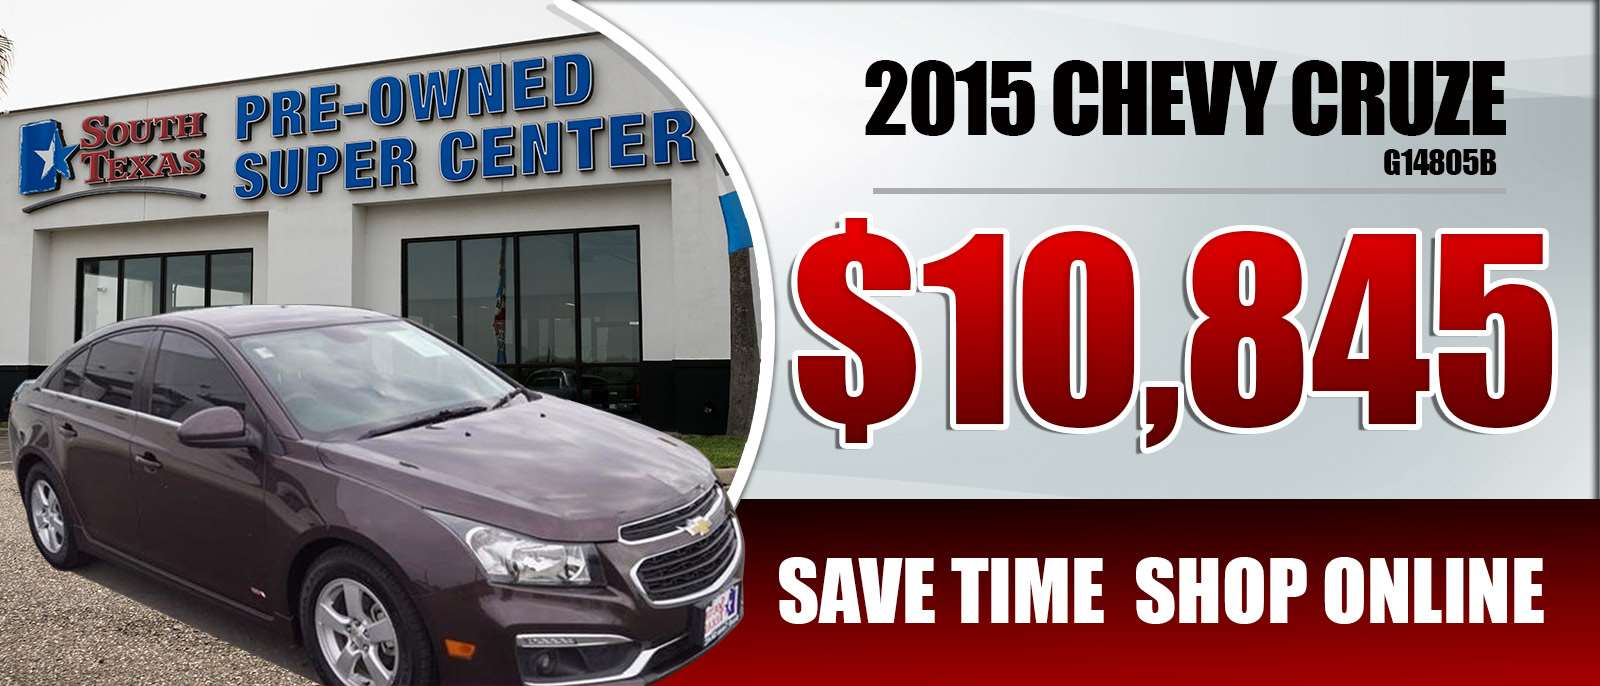 South Texas Pre-Owned Super Center | McAllen, Texas | Pre